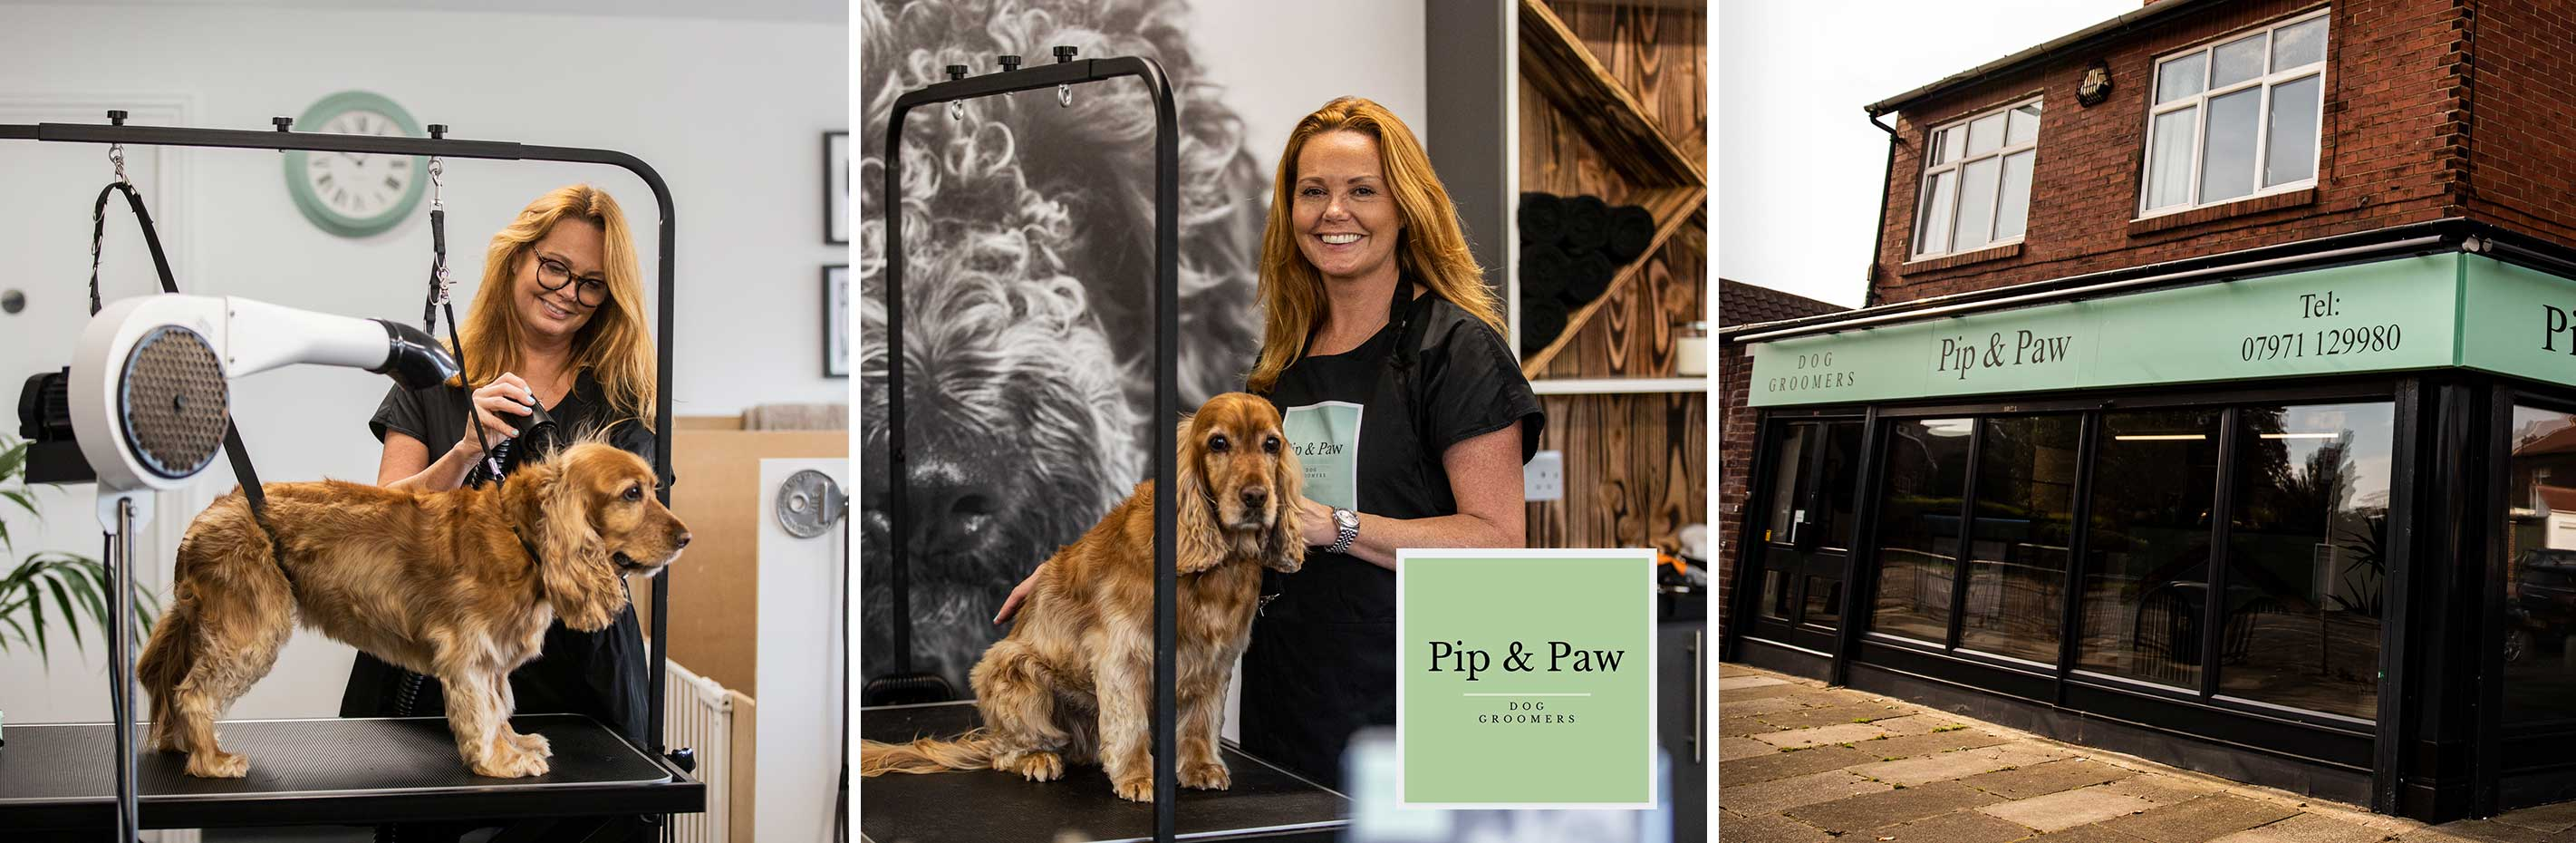 Your dog's new best fur-end: Pip & Paw